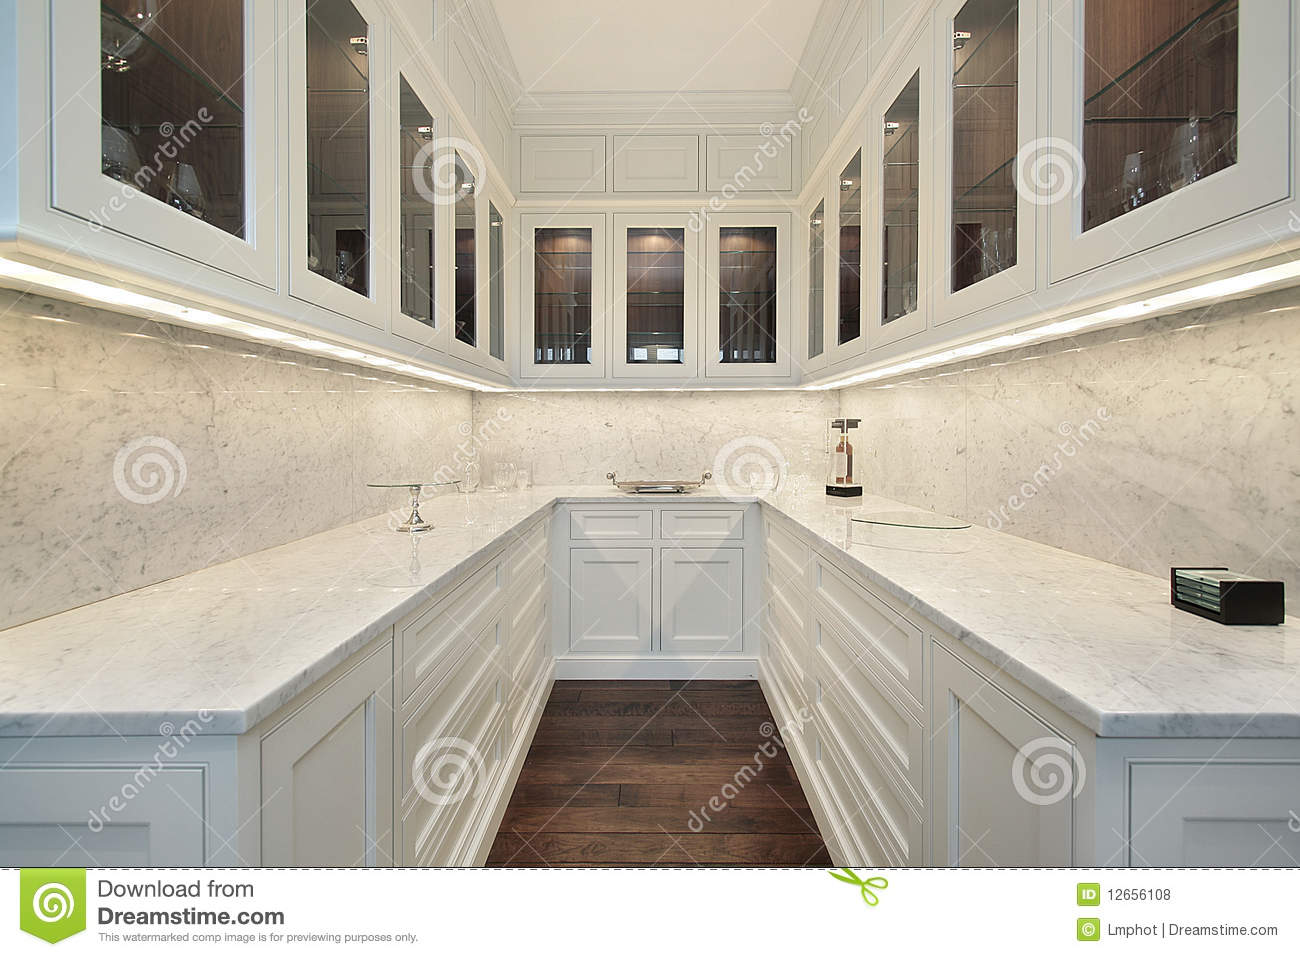 Butler s pantry in luxury home royalty free stock photos image